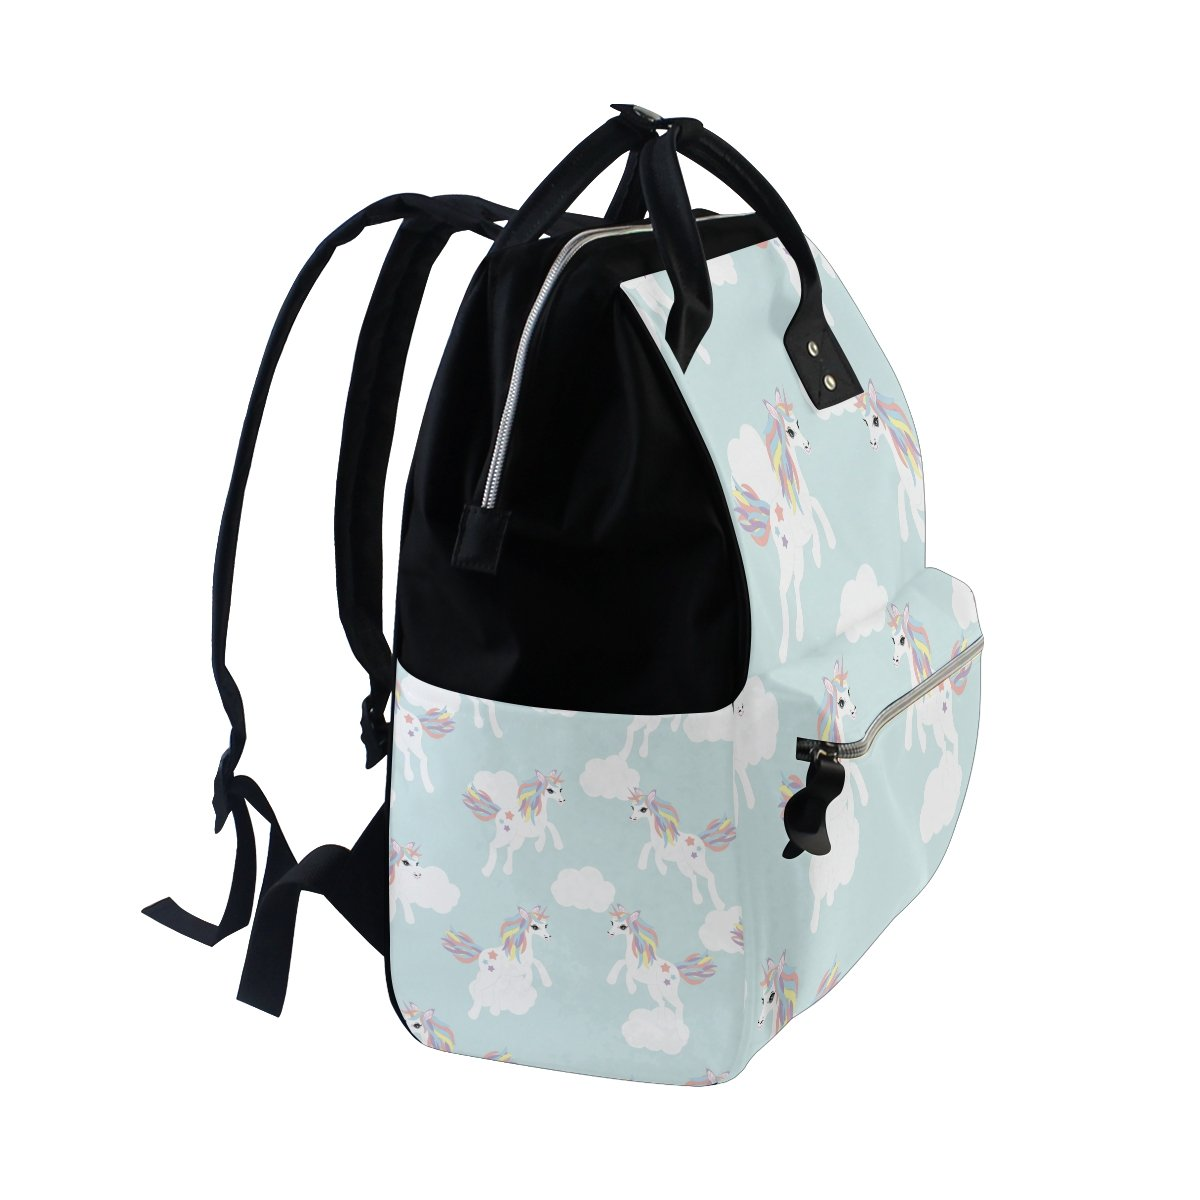 Diaper Bags Backpack Purse Mummy Backpack Fashion Mummy Maternity Nappy Bag Cool Cute Travel Backpack Laptop Backpack with Cute Colourful Unicorns Daypack for Women Girls Kids